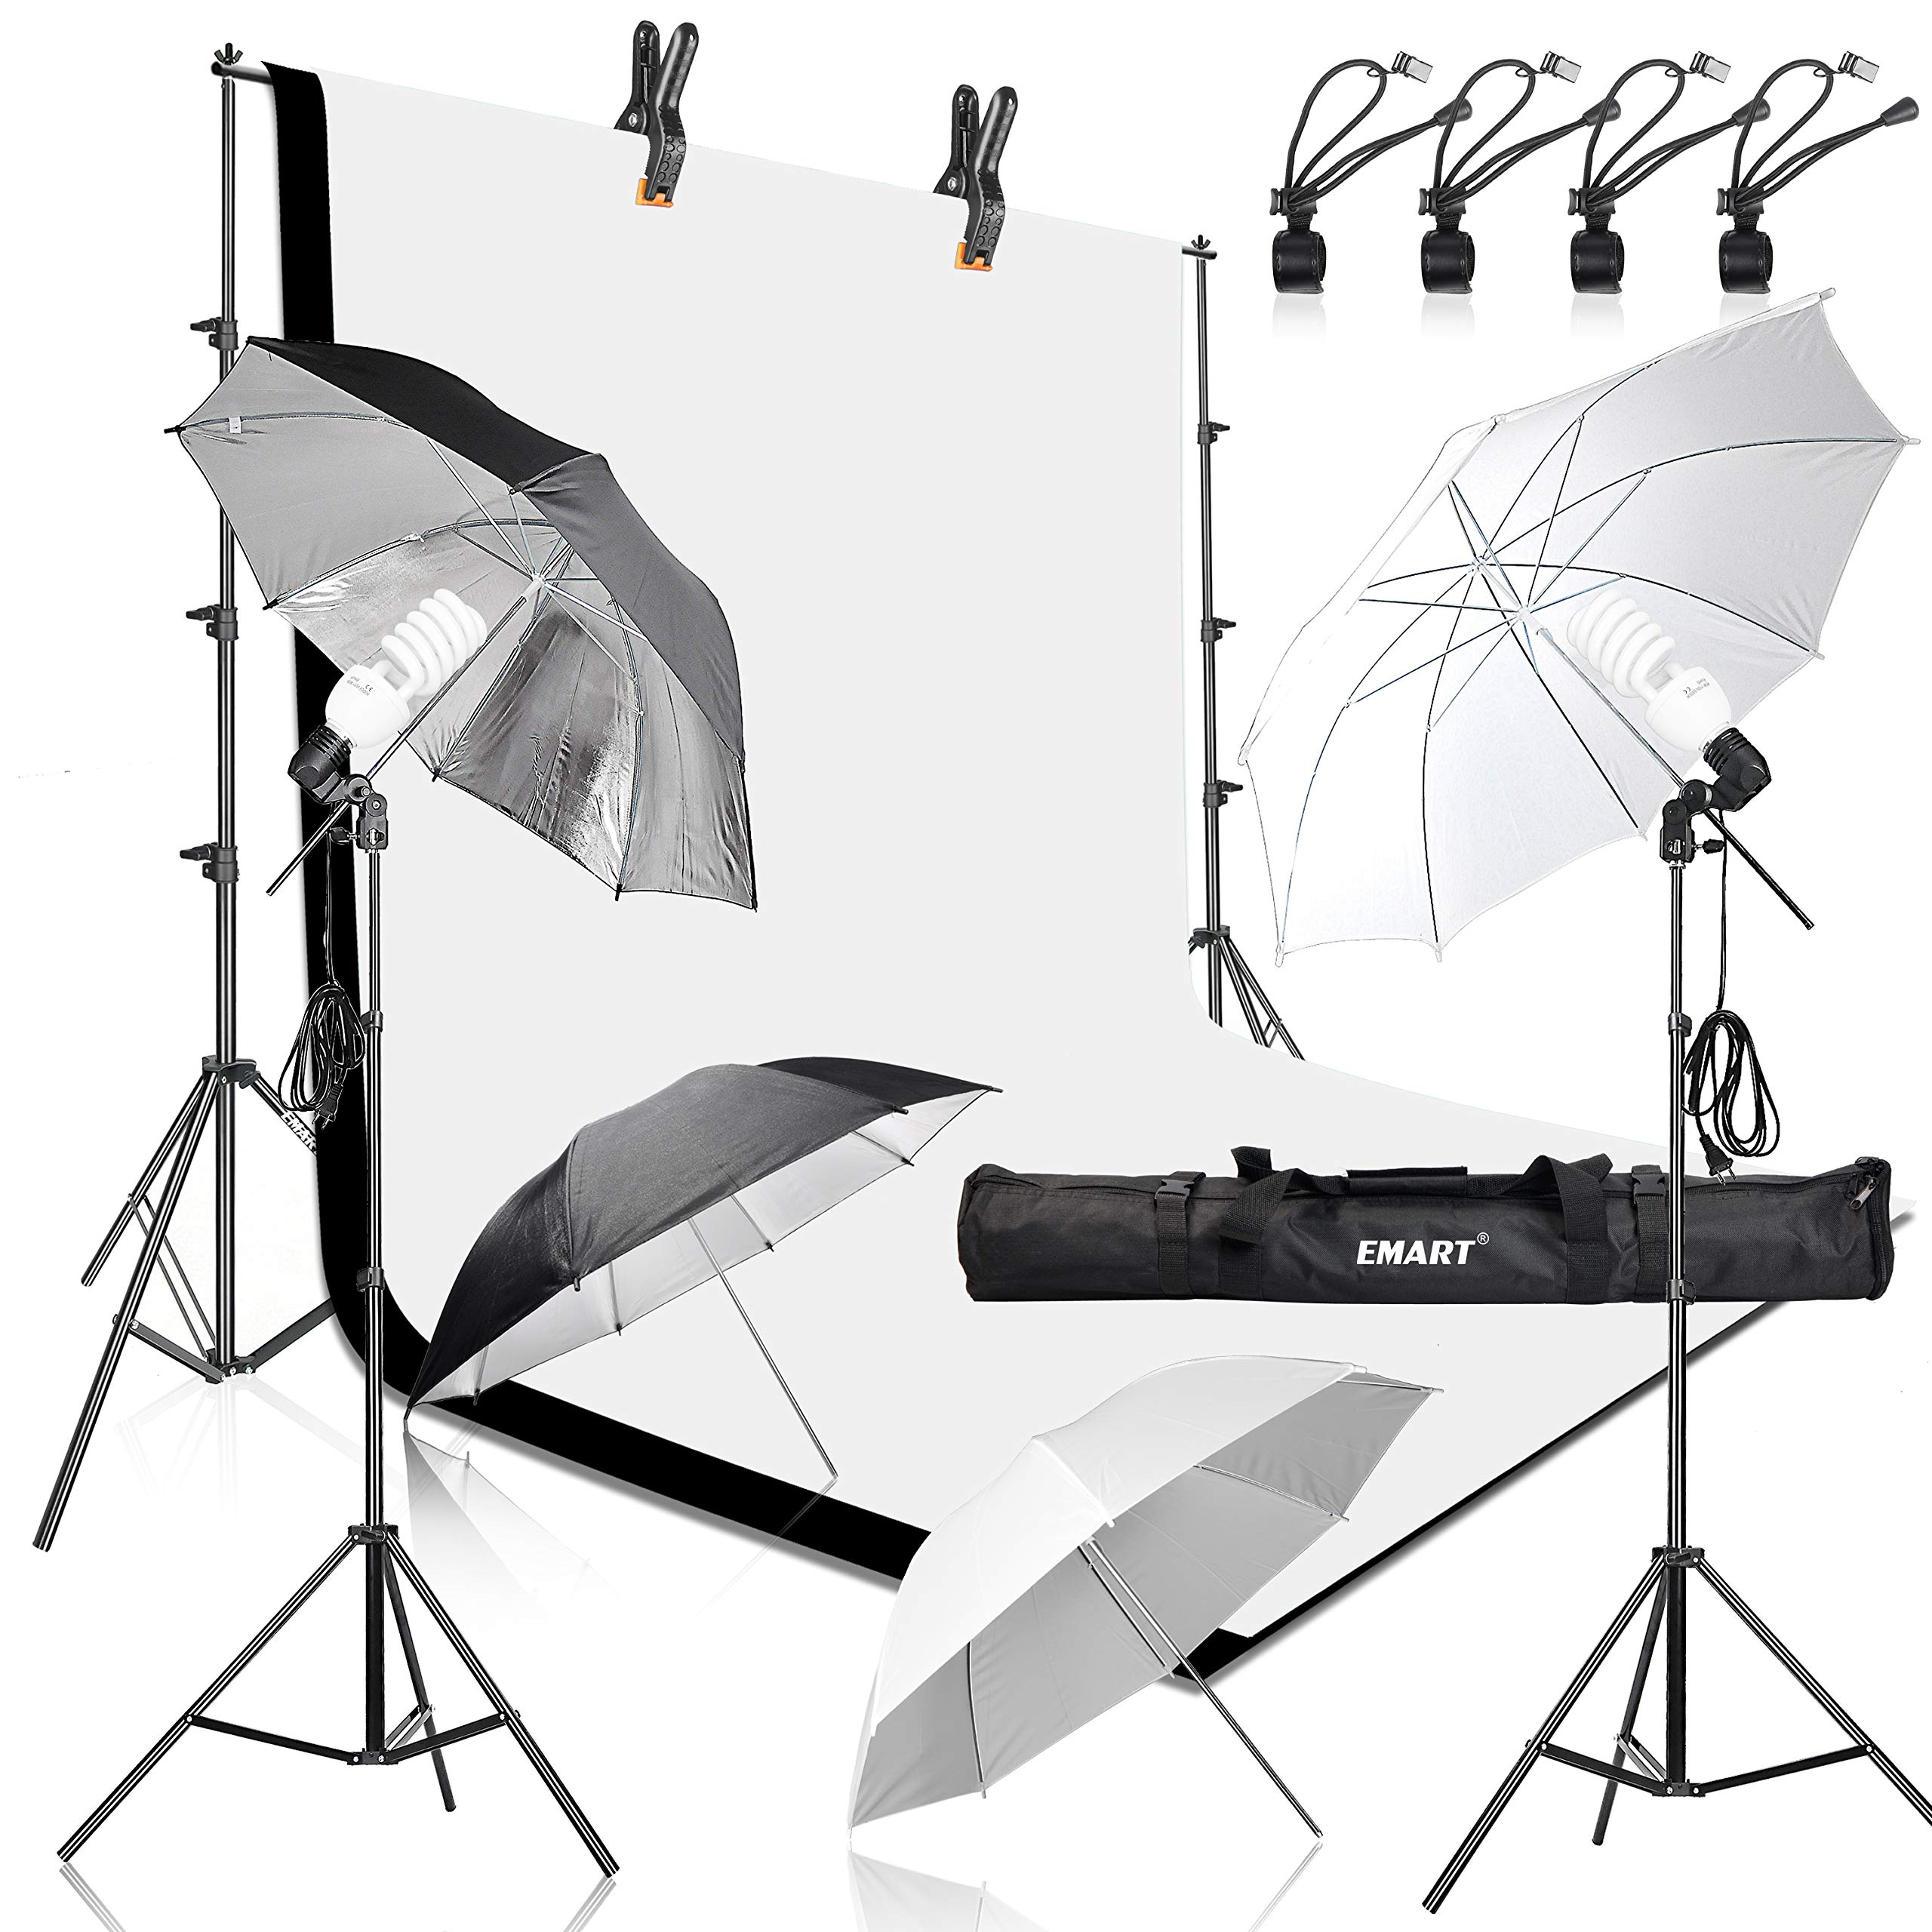 Emart 400W 5500K Daylight Umbrella Continuous Lighting Kit, 8.5x10ft Background Support System with 2 Muslin backdrops (Black and White) for Photo Studio Product, Portrait and Video Shoot Photography by EMART